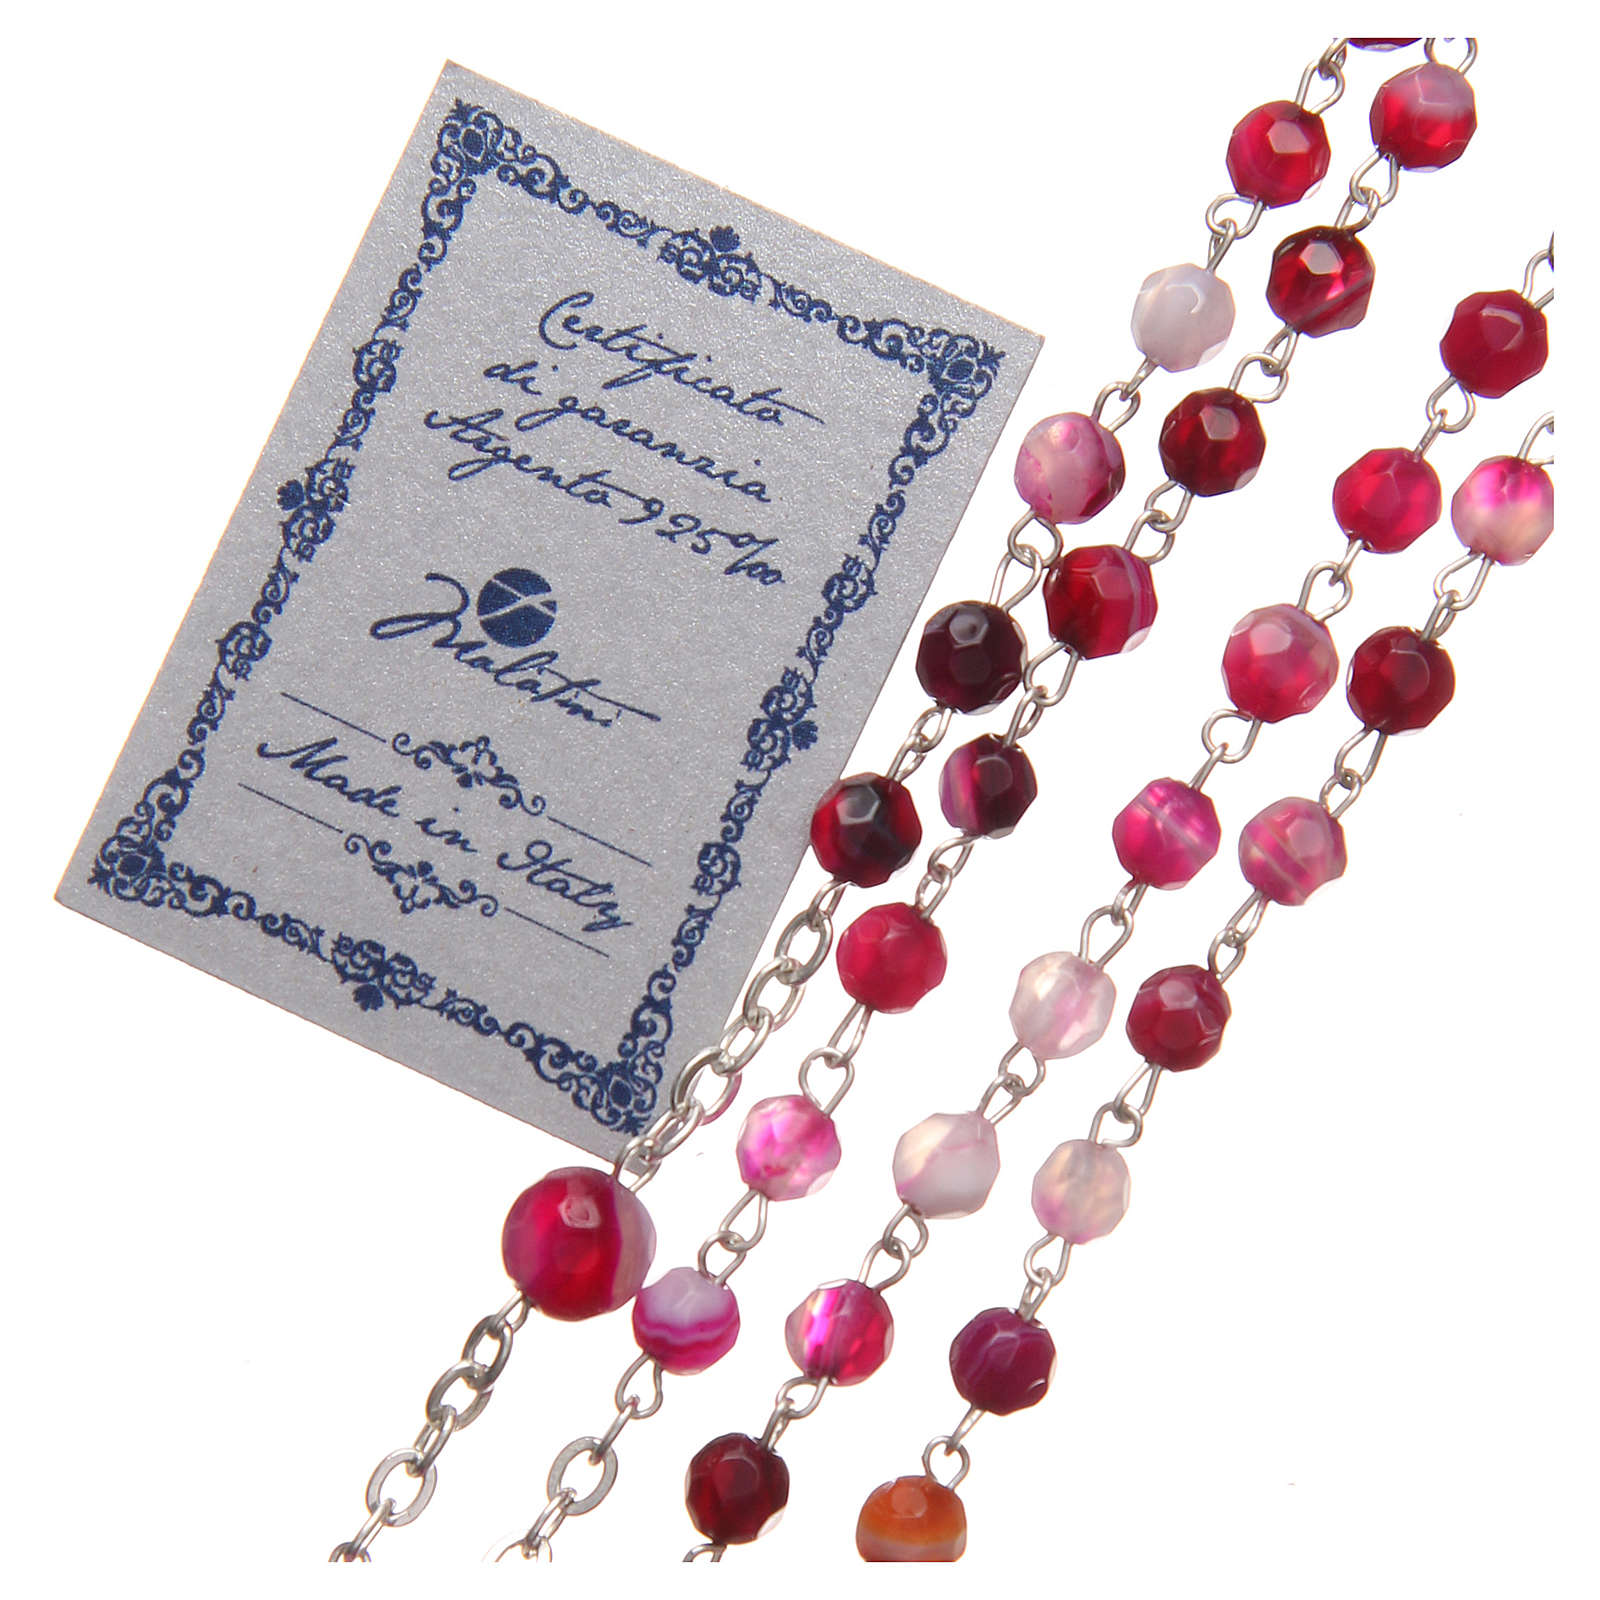 STOCK Rosario agata brasiliana Papa Francesco arg 925 4 mm fucsia 4